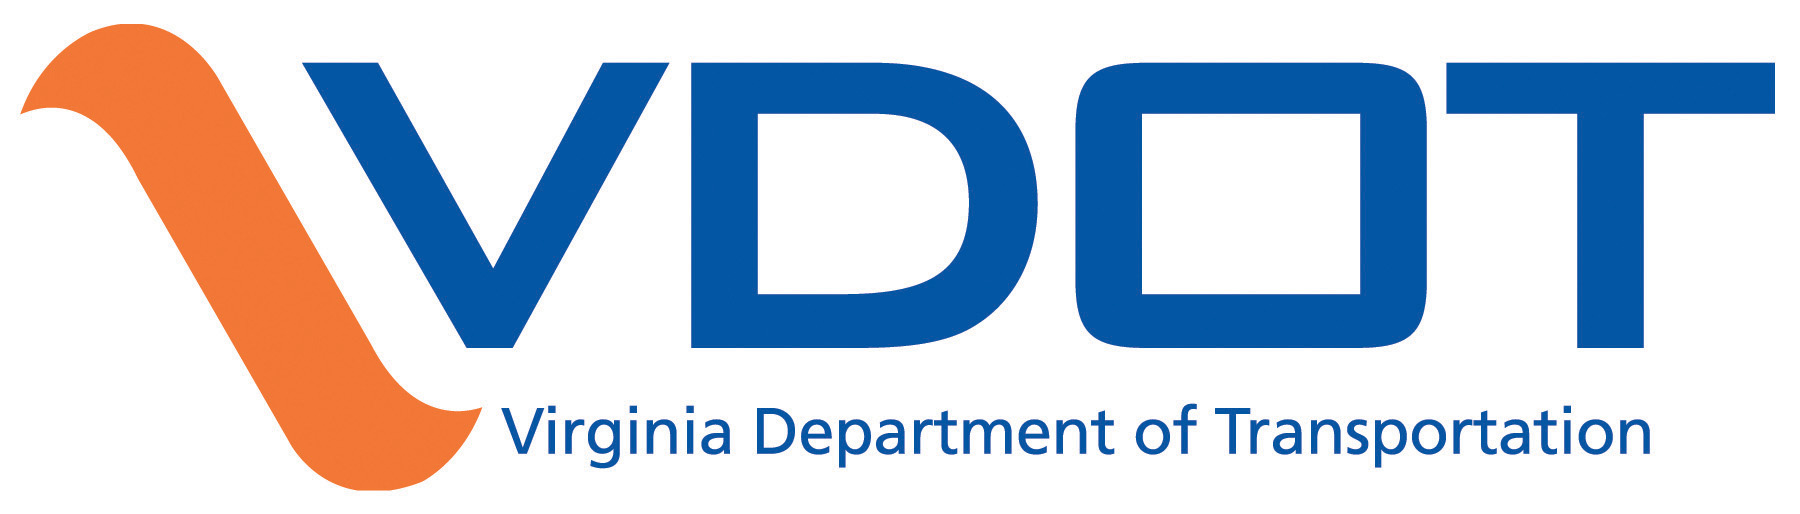 Virginia Department of Transportation logo